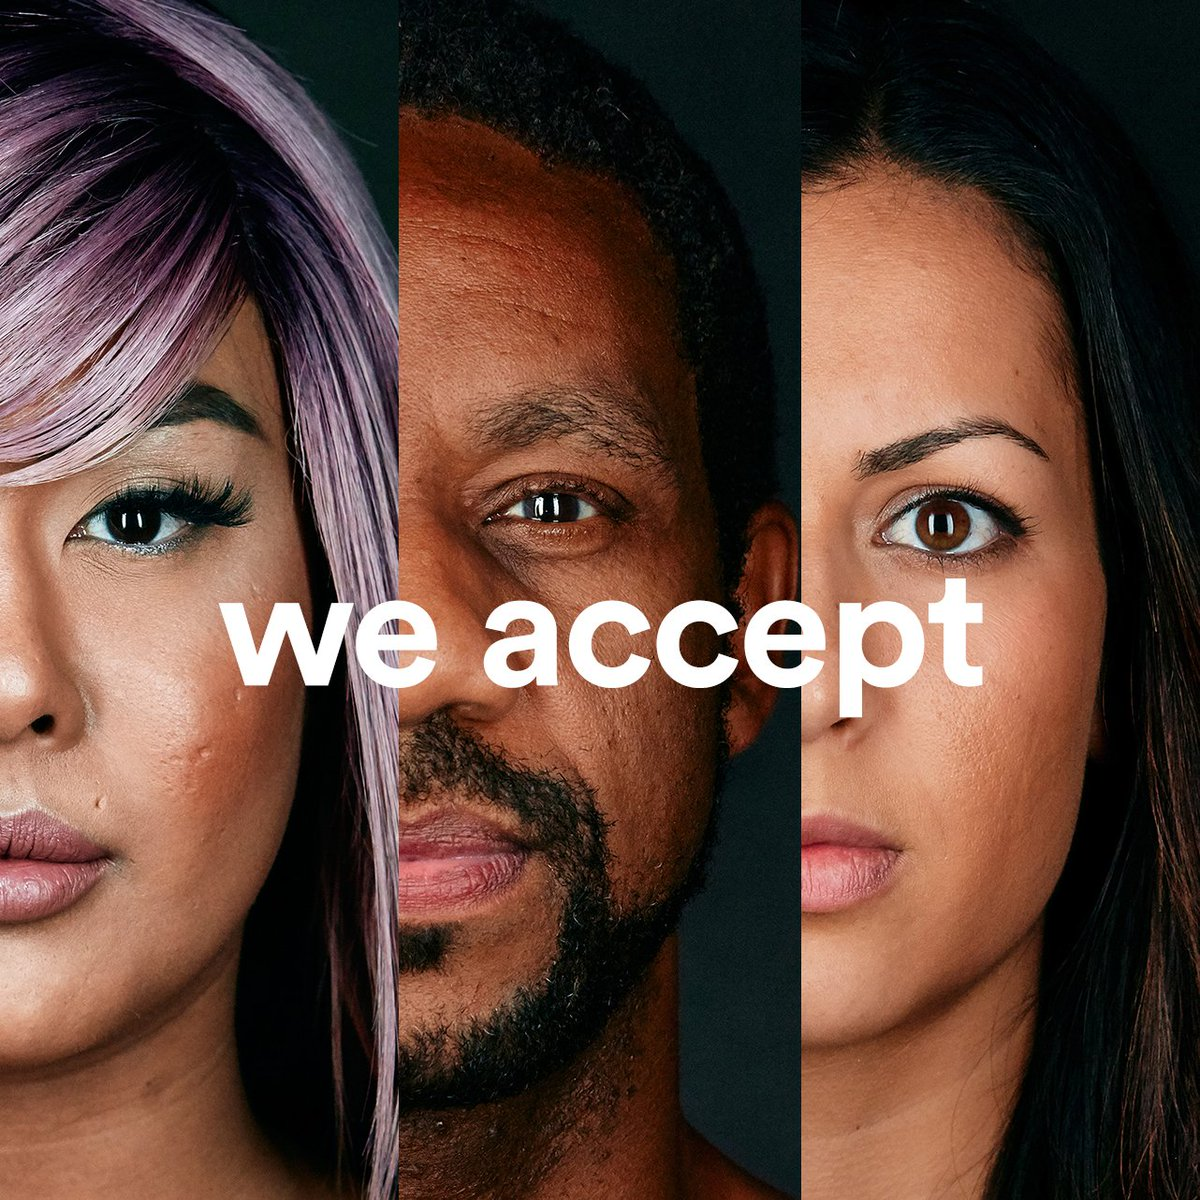 Acceptance starts with all of us.   #weaccept https://t.co/btgqyYHVTK